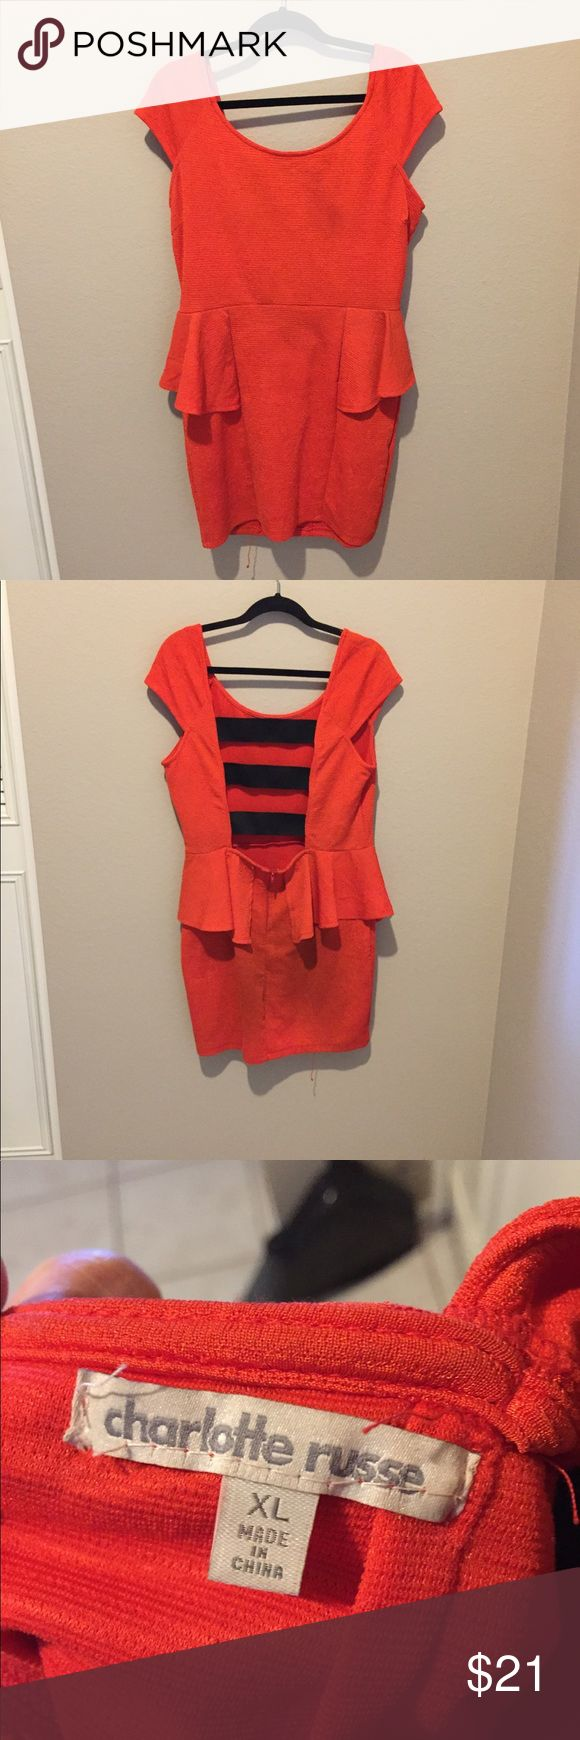 Red peplum dress Super cute, comfortable and perfect for a fun night out! This dress is very stretchy and true to size, also has a nice slightly longer length. Dress is peplum style with cute open back band details in the back. Charlotte Russe Dresses Mini